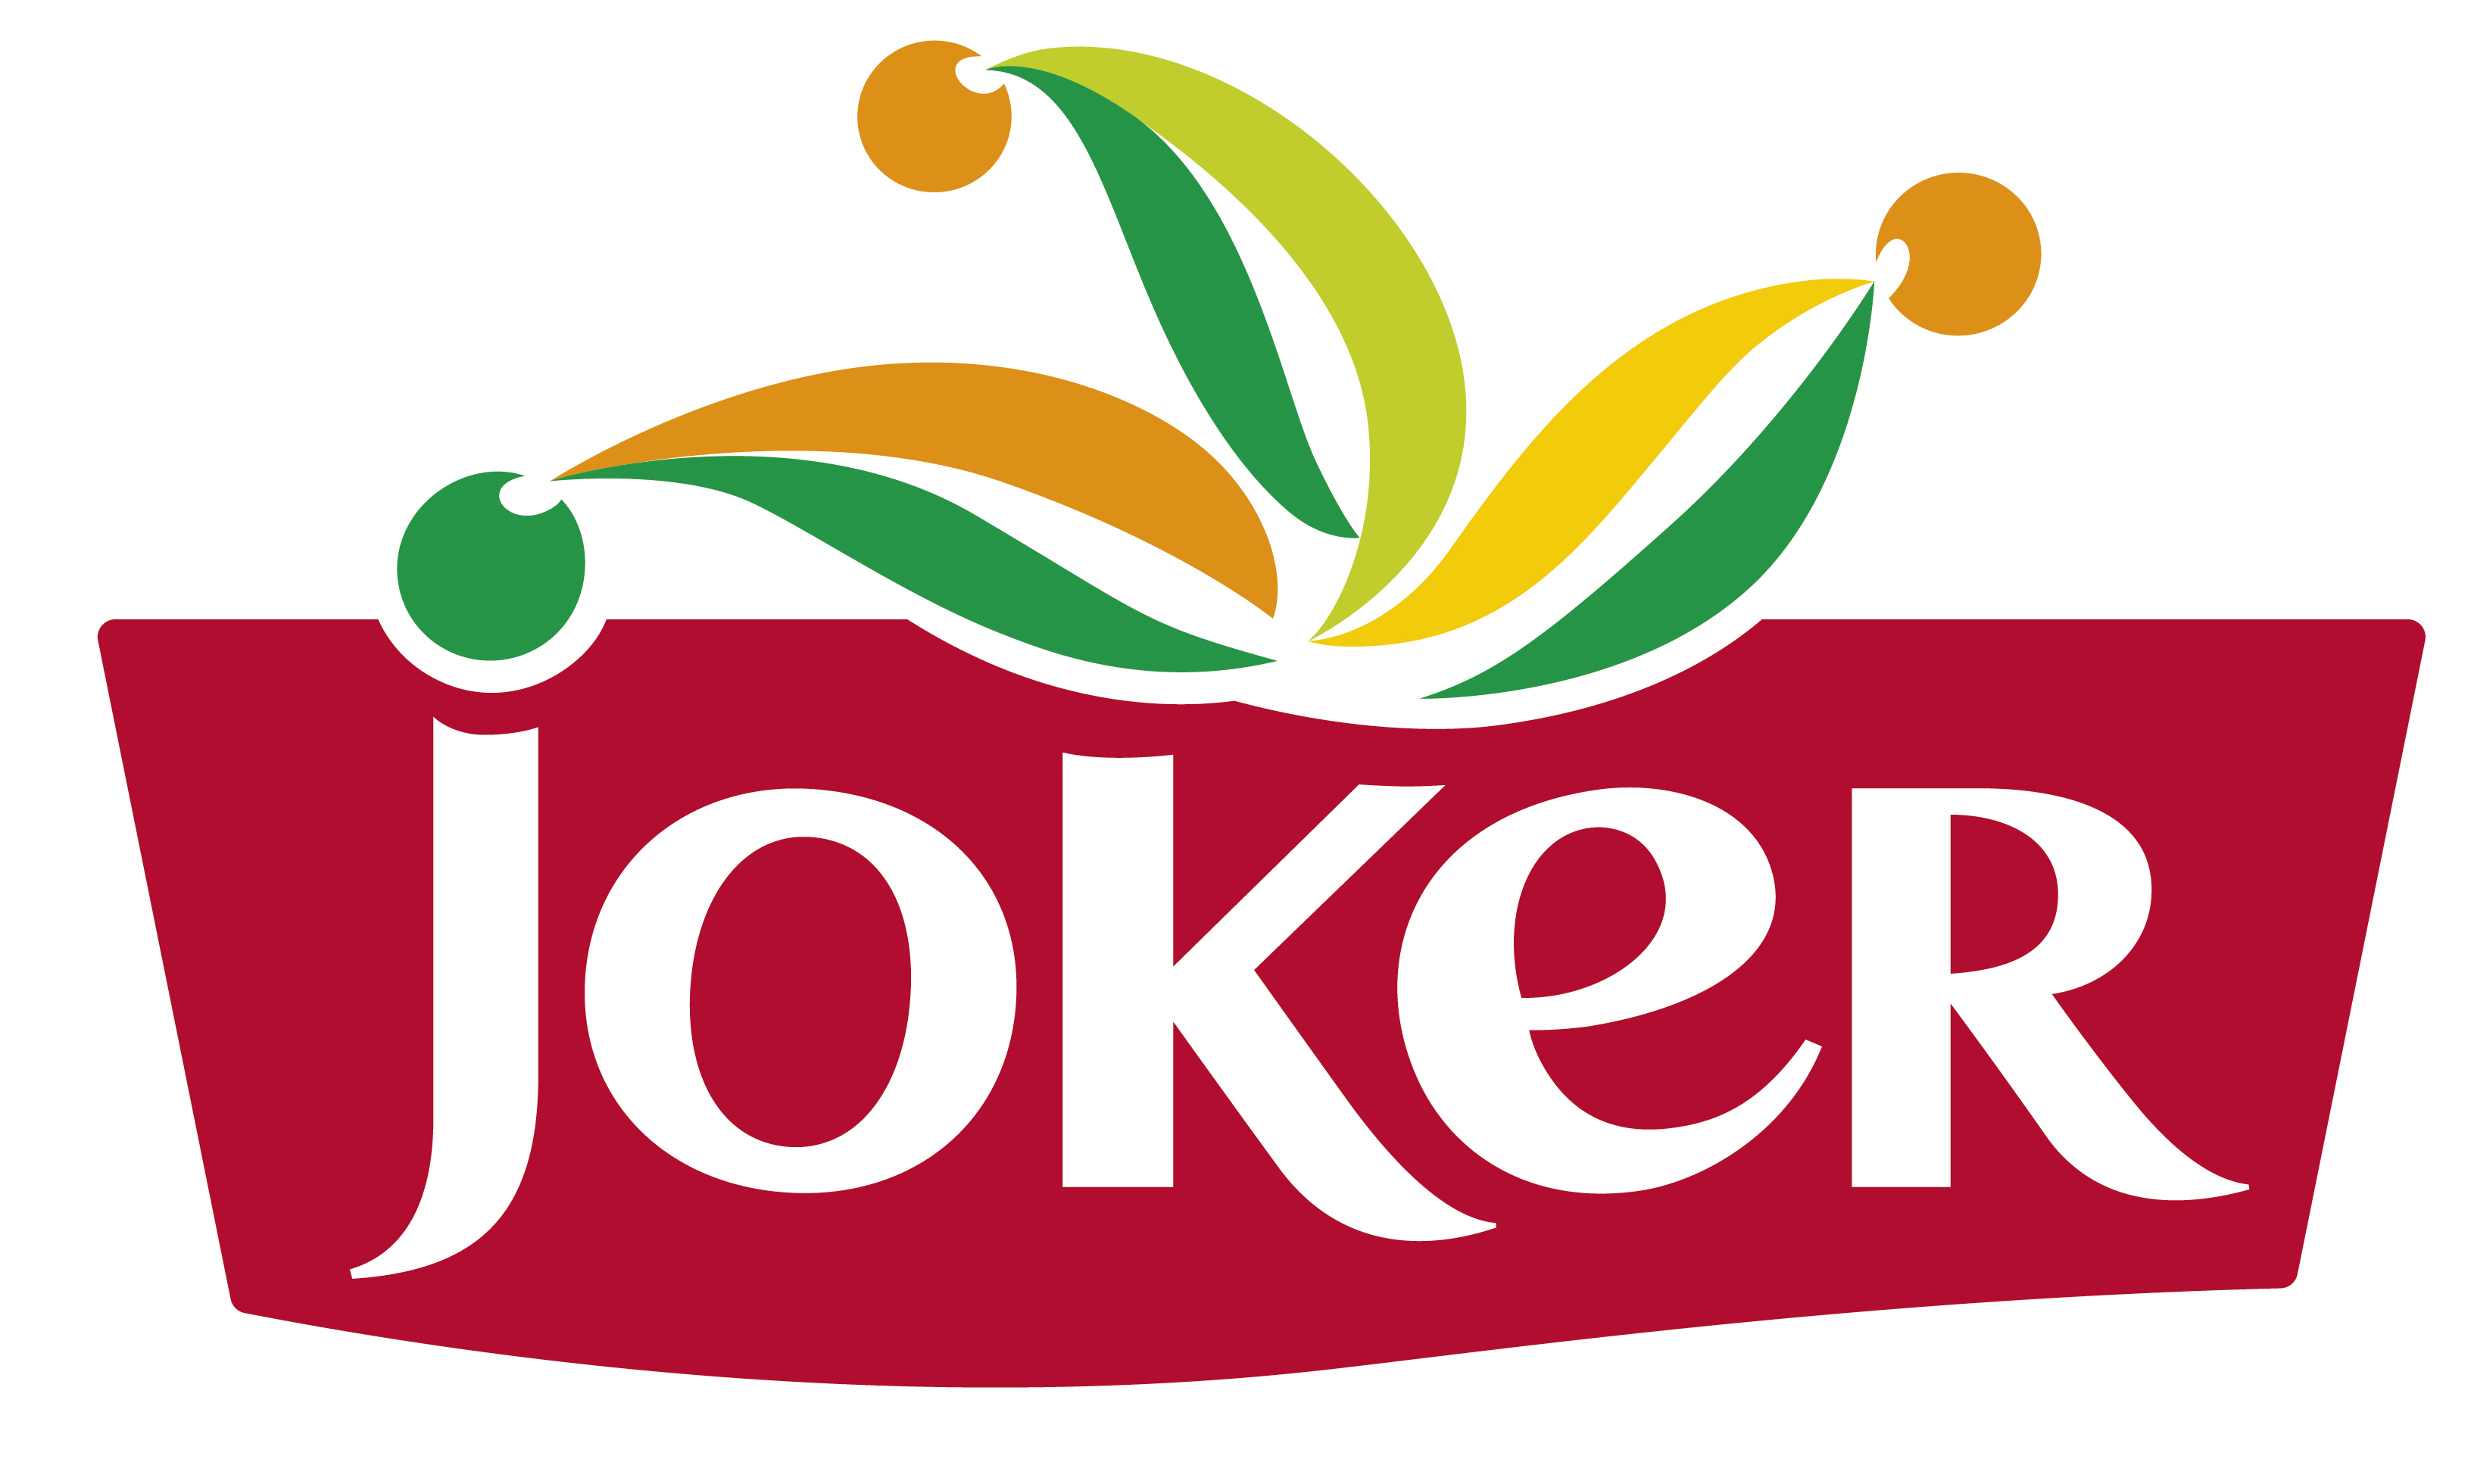 Joker, Mâcon